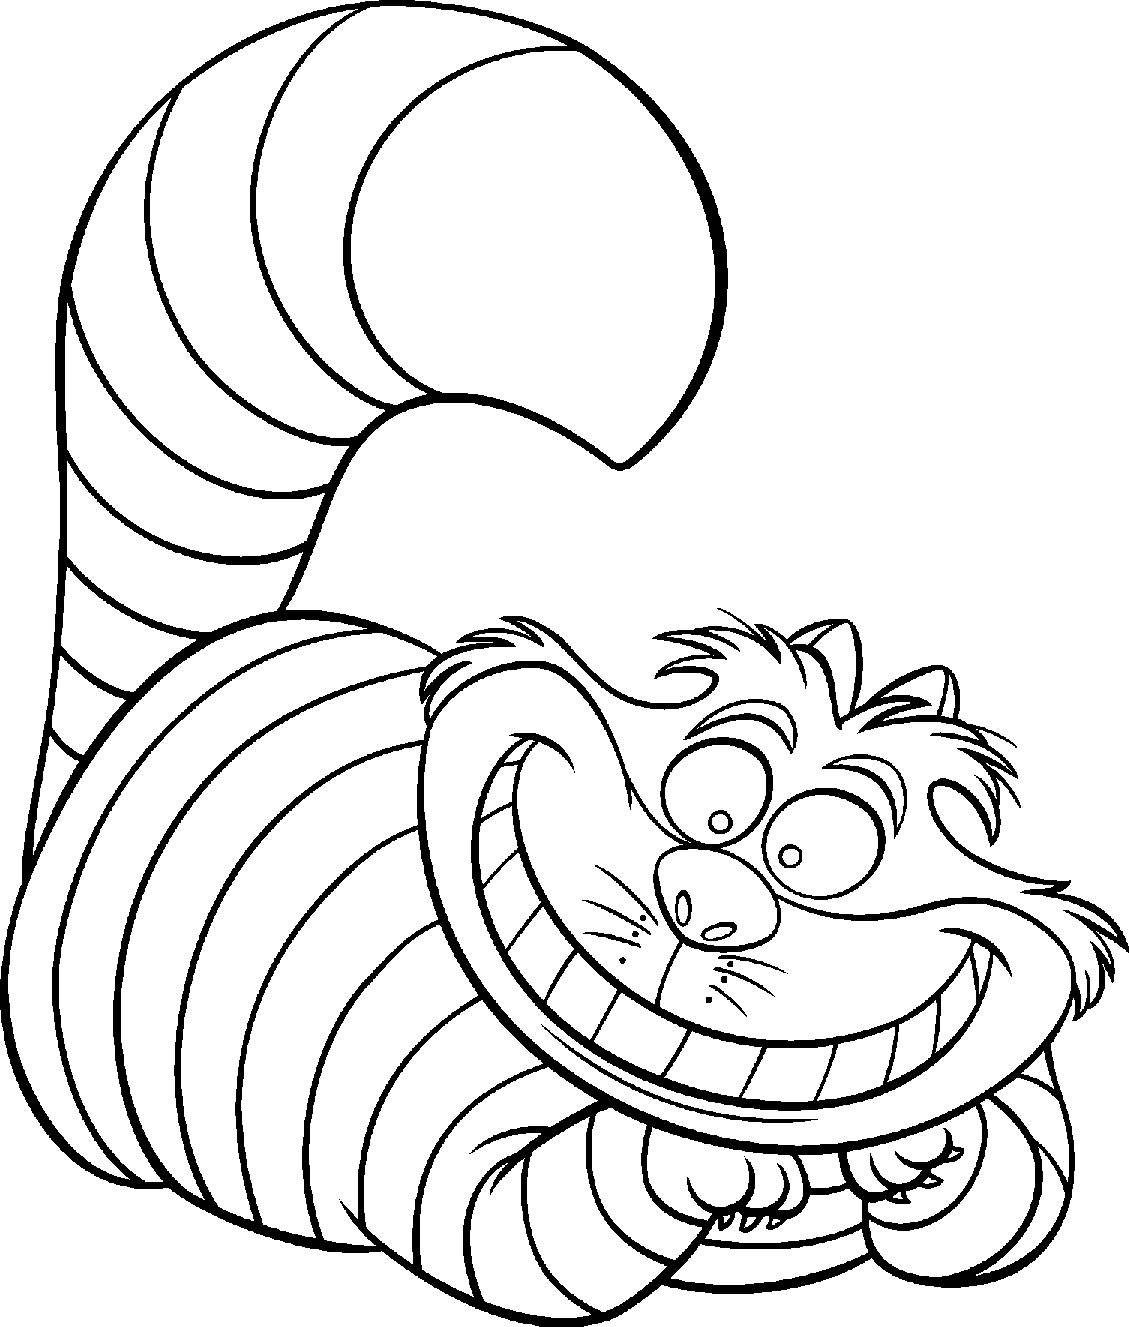 Cheshire Cat coloring #14, Download drawings